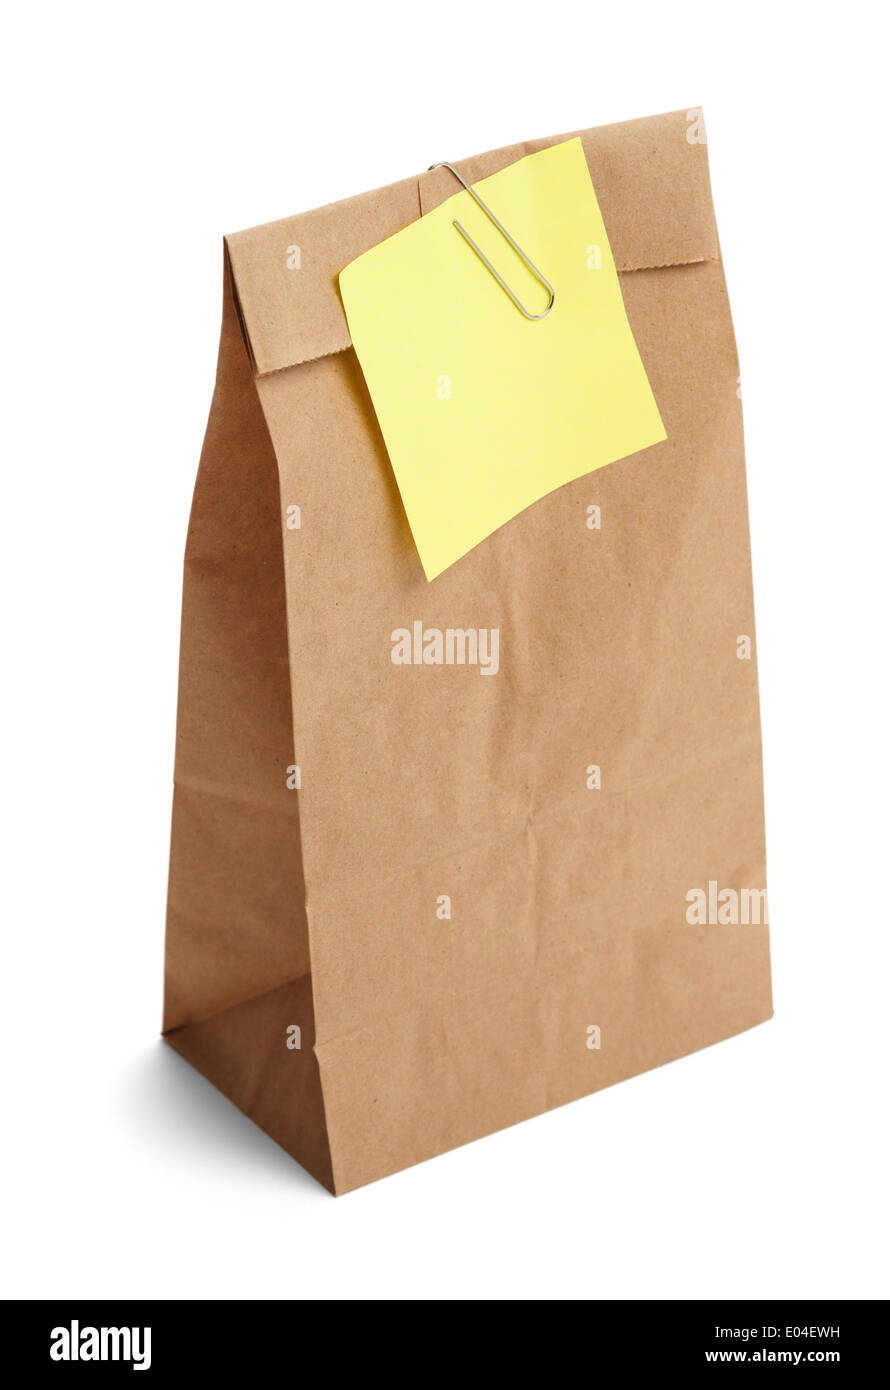 Brown paper bag with yellow note held on with paper clip isolated on white background. - Stock Image